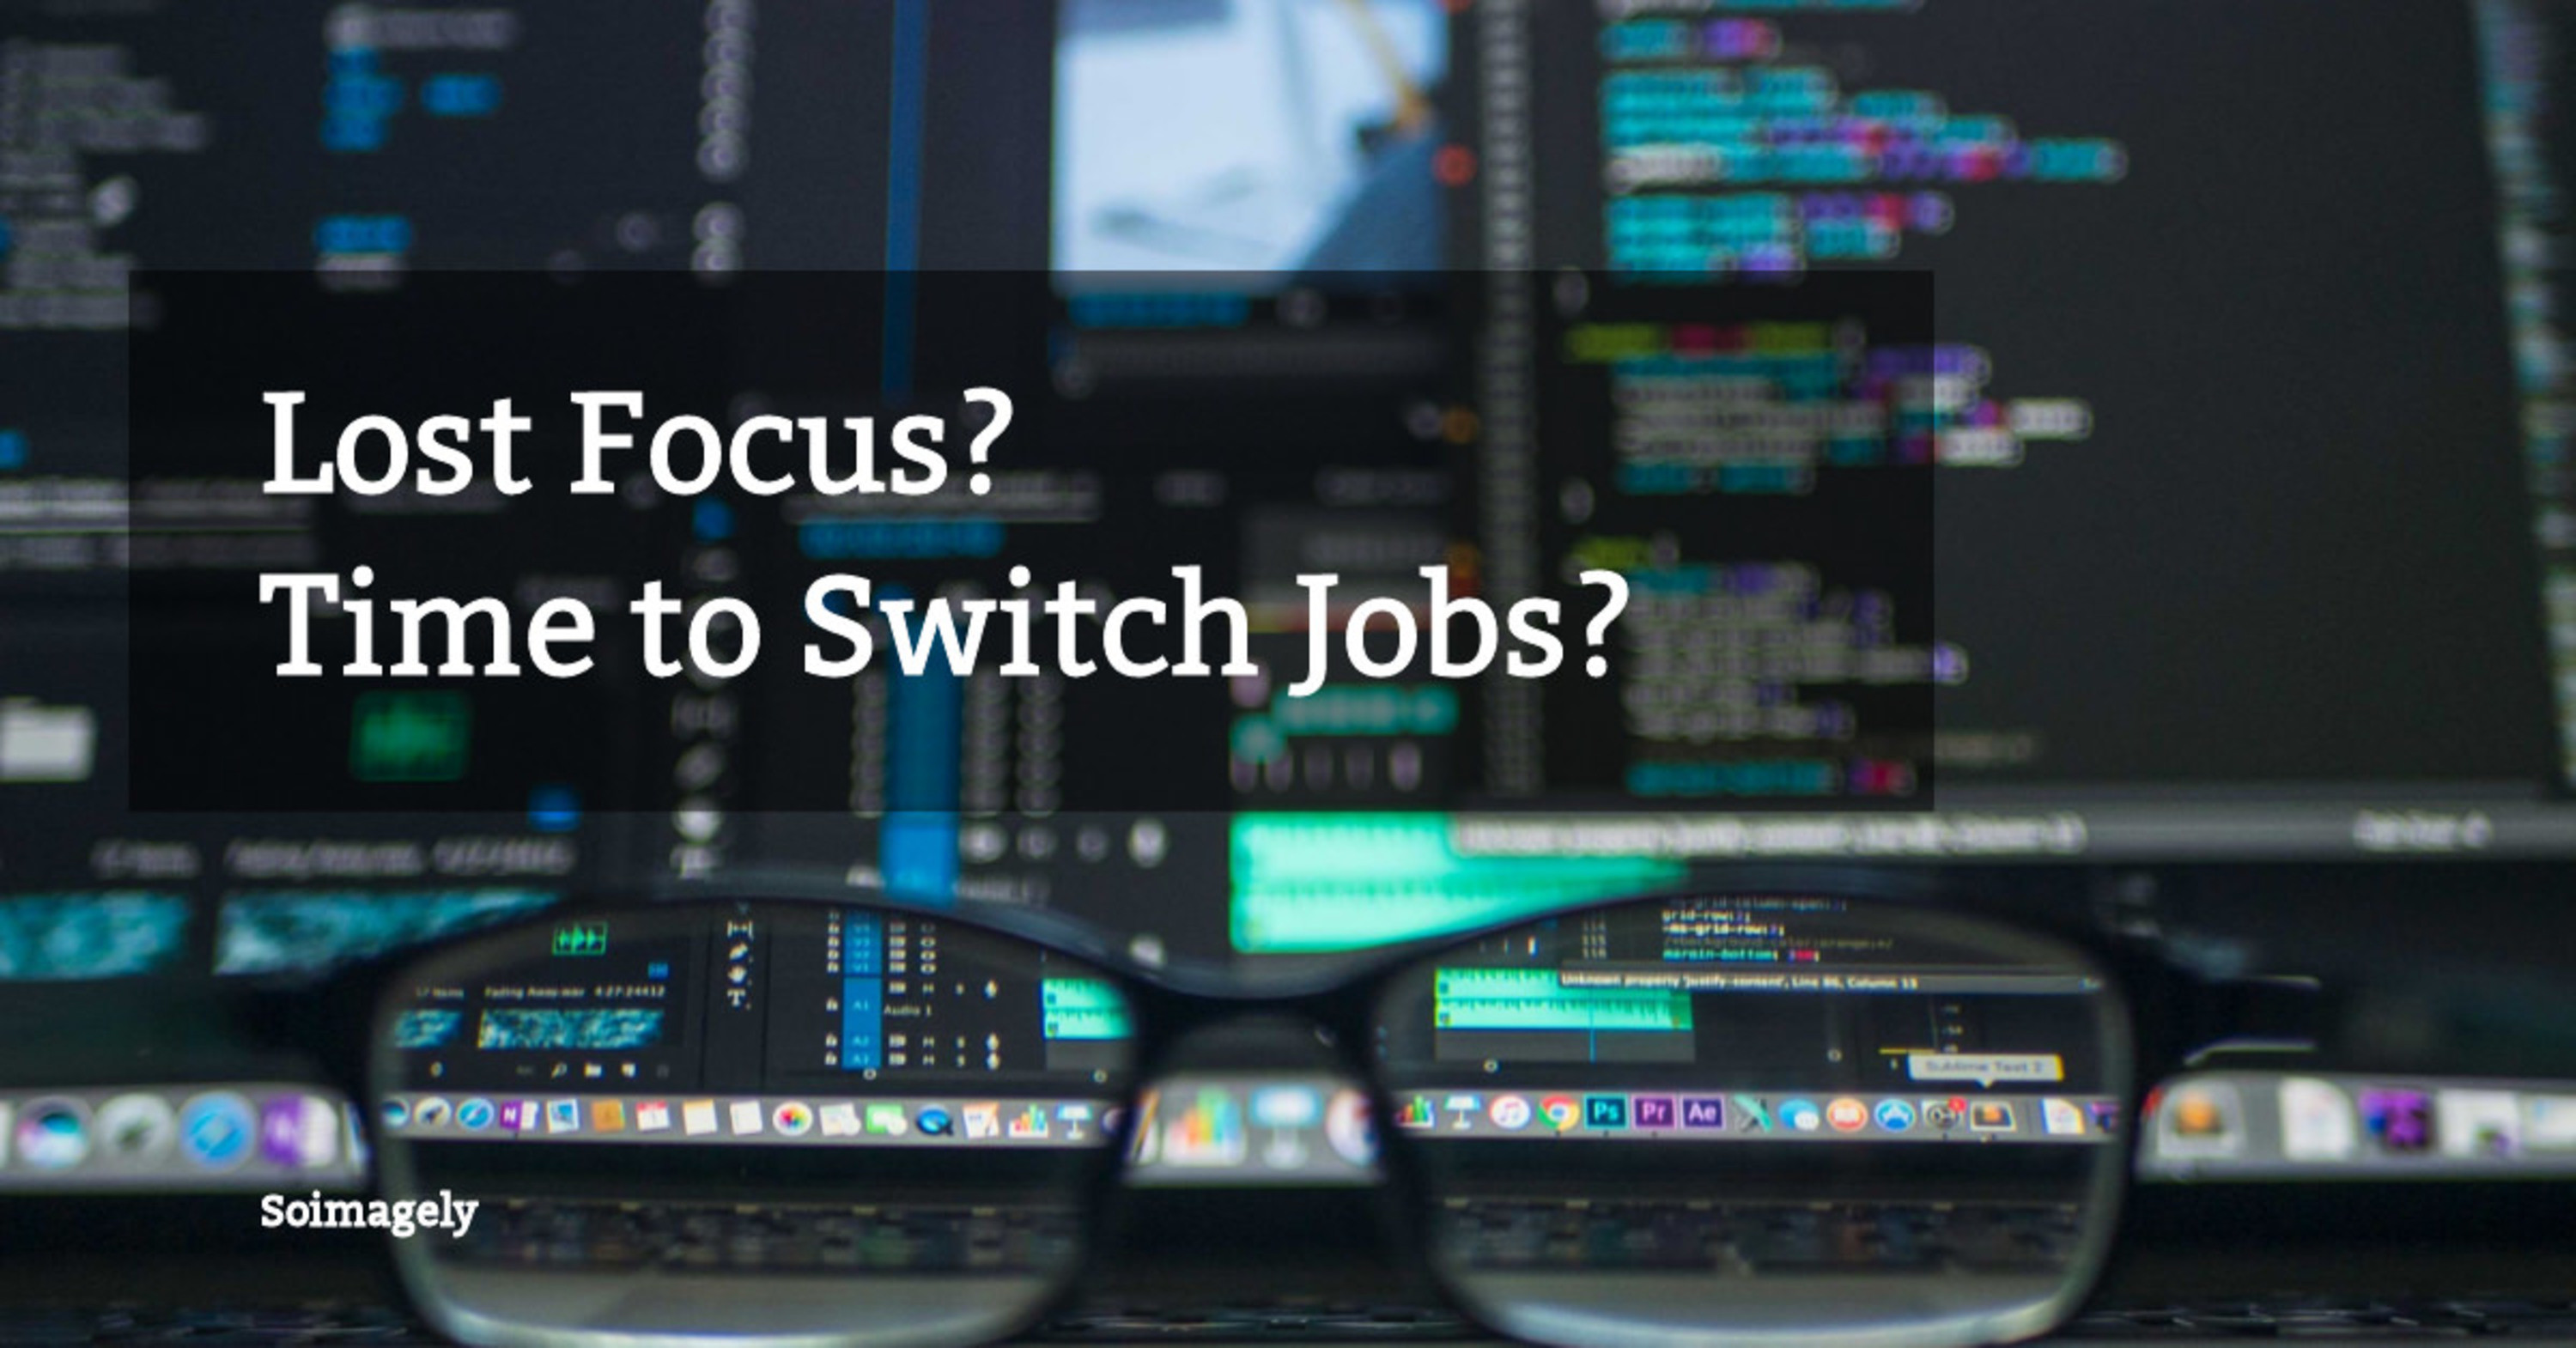 Lost Focus? Time to Switch Jobs?